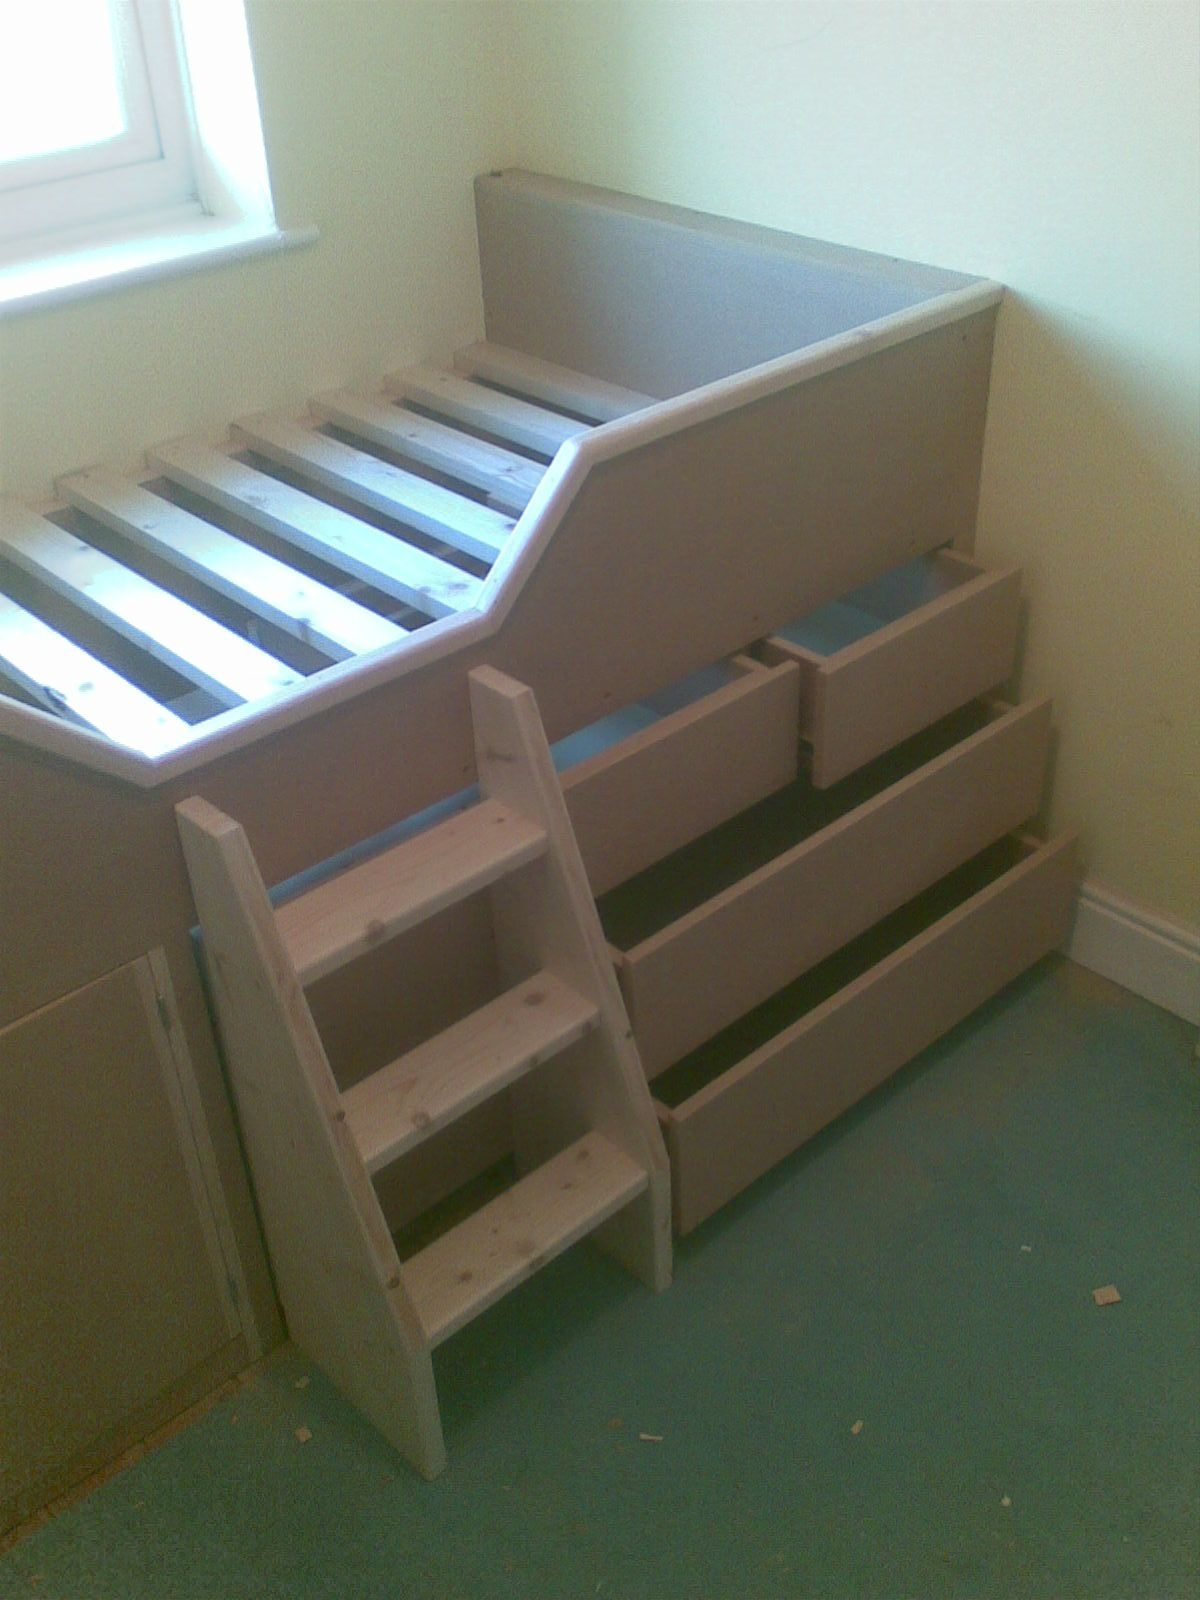 Cabin Beds Google Search Box Room Bedroom Ideas Small Boys